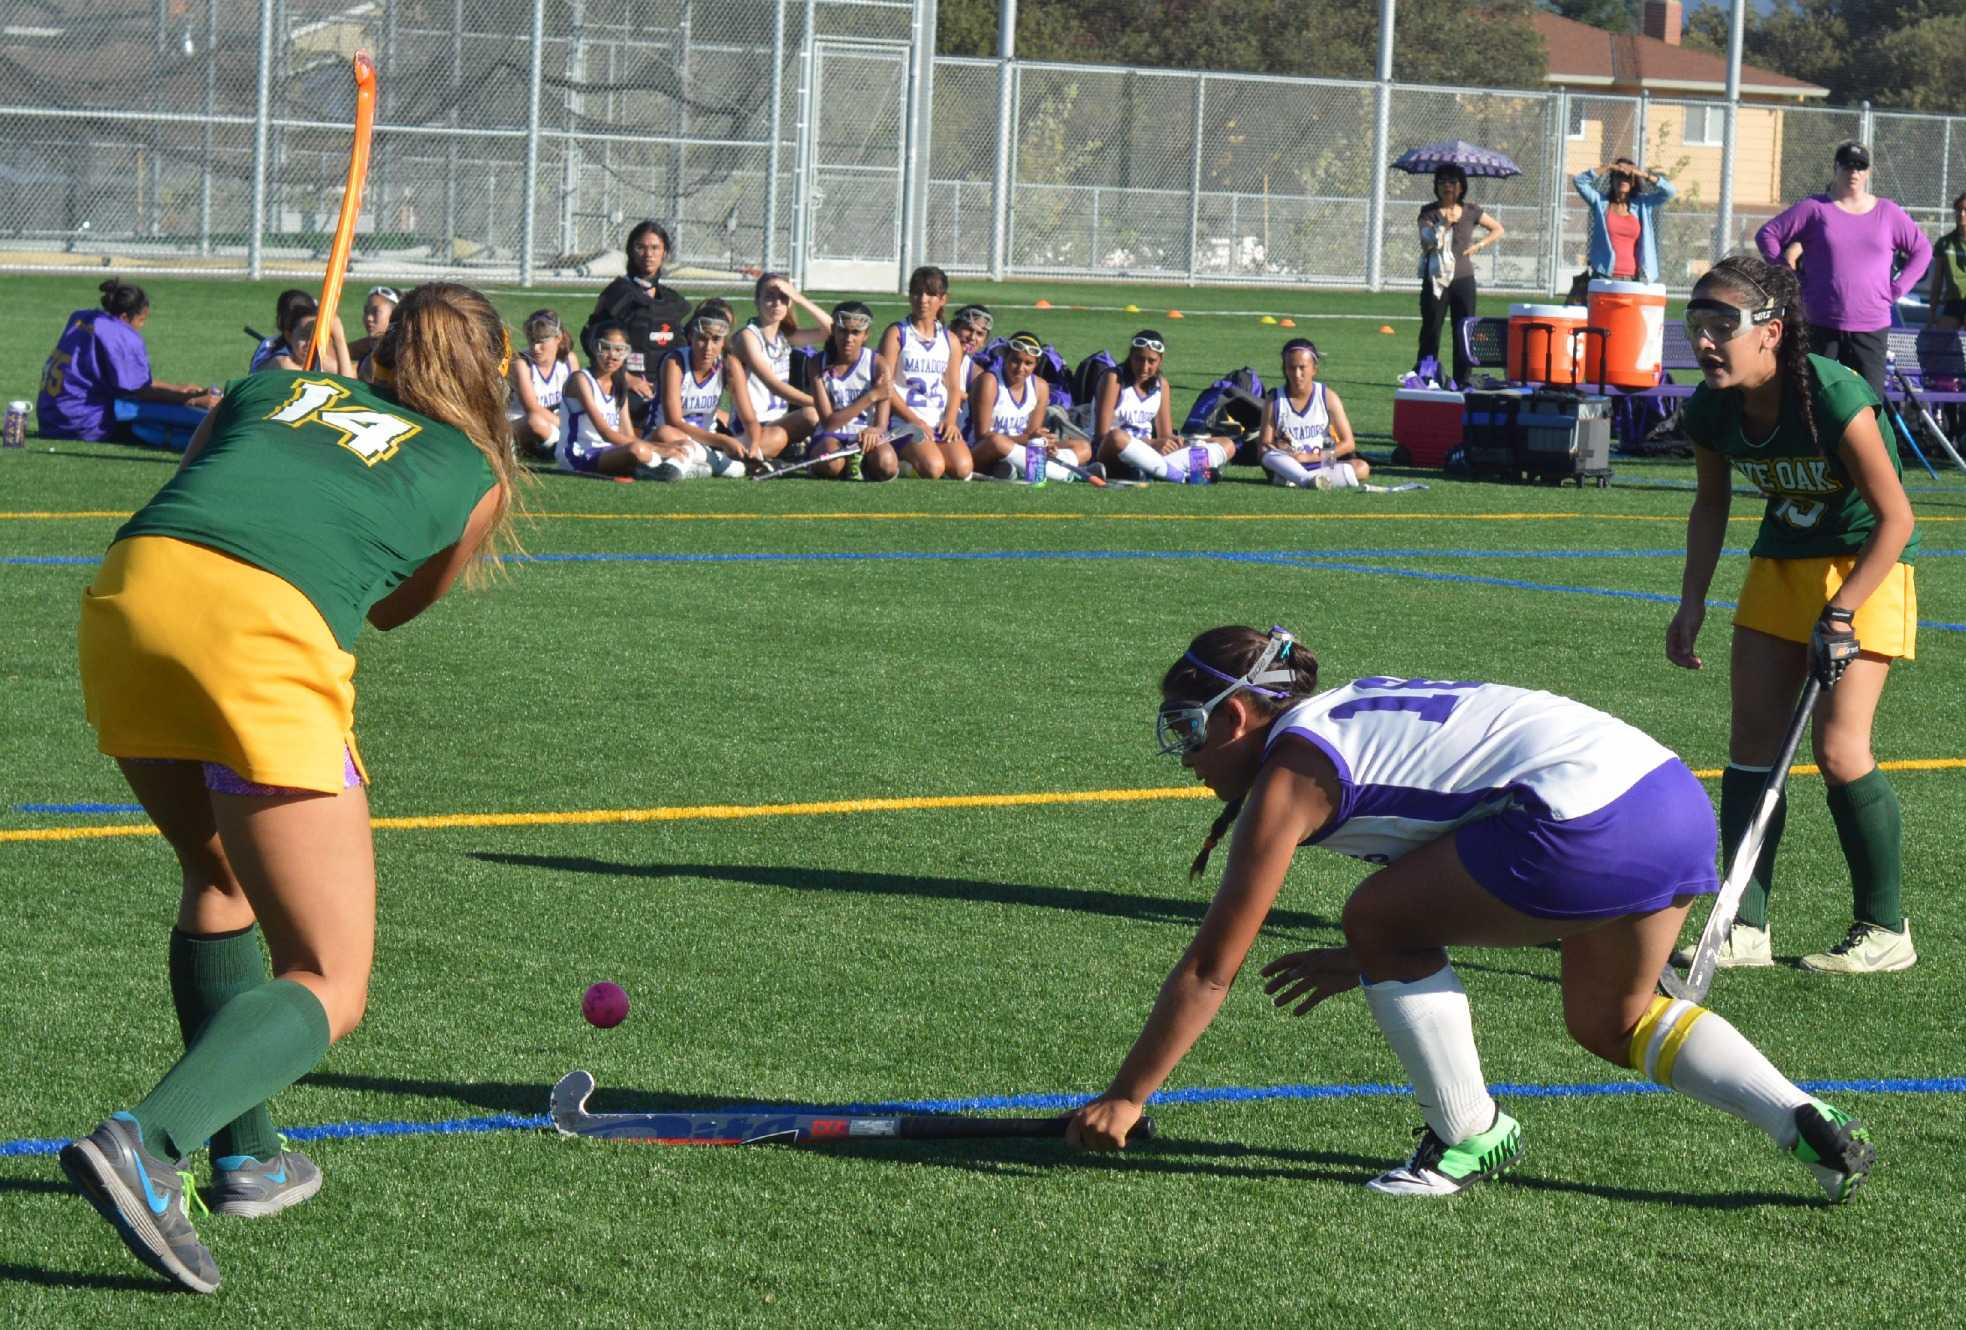 Junior co-captain Janaye Sakkas lunges for the ball in a game against Live Oak High School on Sept. 18. Sakkas scored one goal in the game; the Lady Mats tied 3-3. Photo by Ashish Samaddar.